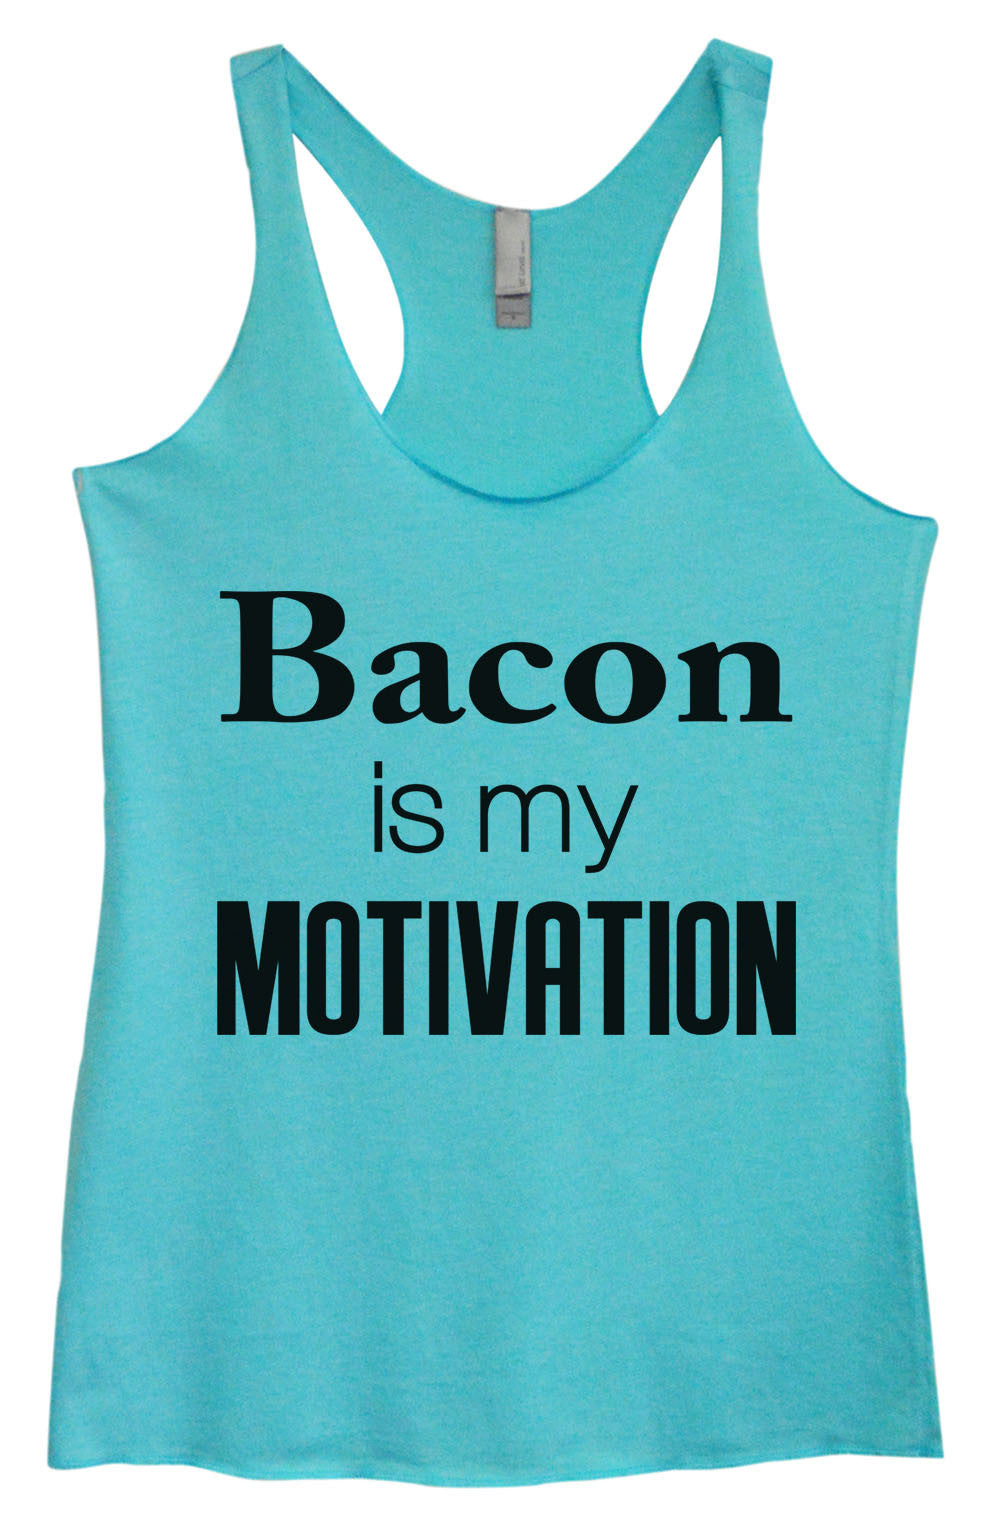 Womens Fashion Triblend Tank Top - Bacon Is My Motivation - Tri-761 - Funny Shirts Tank Tops Burnouts and Triblends  - 3